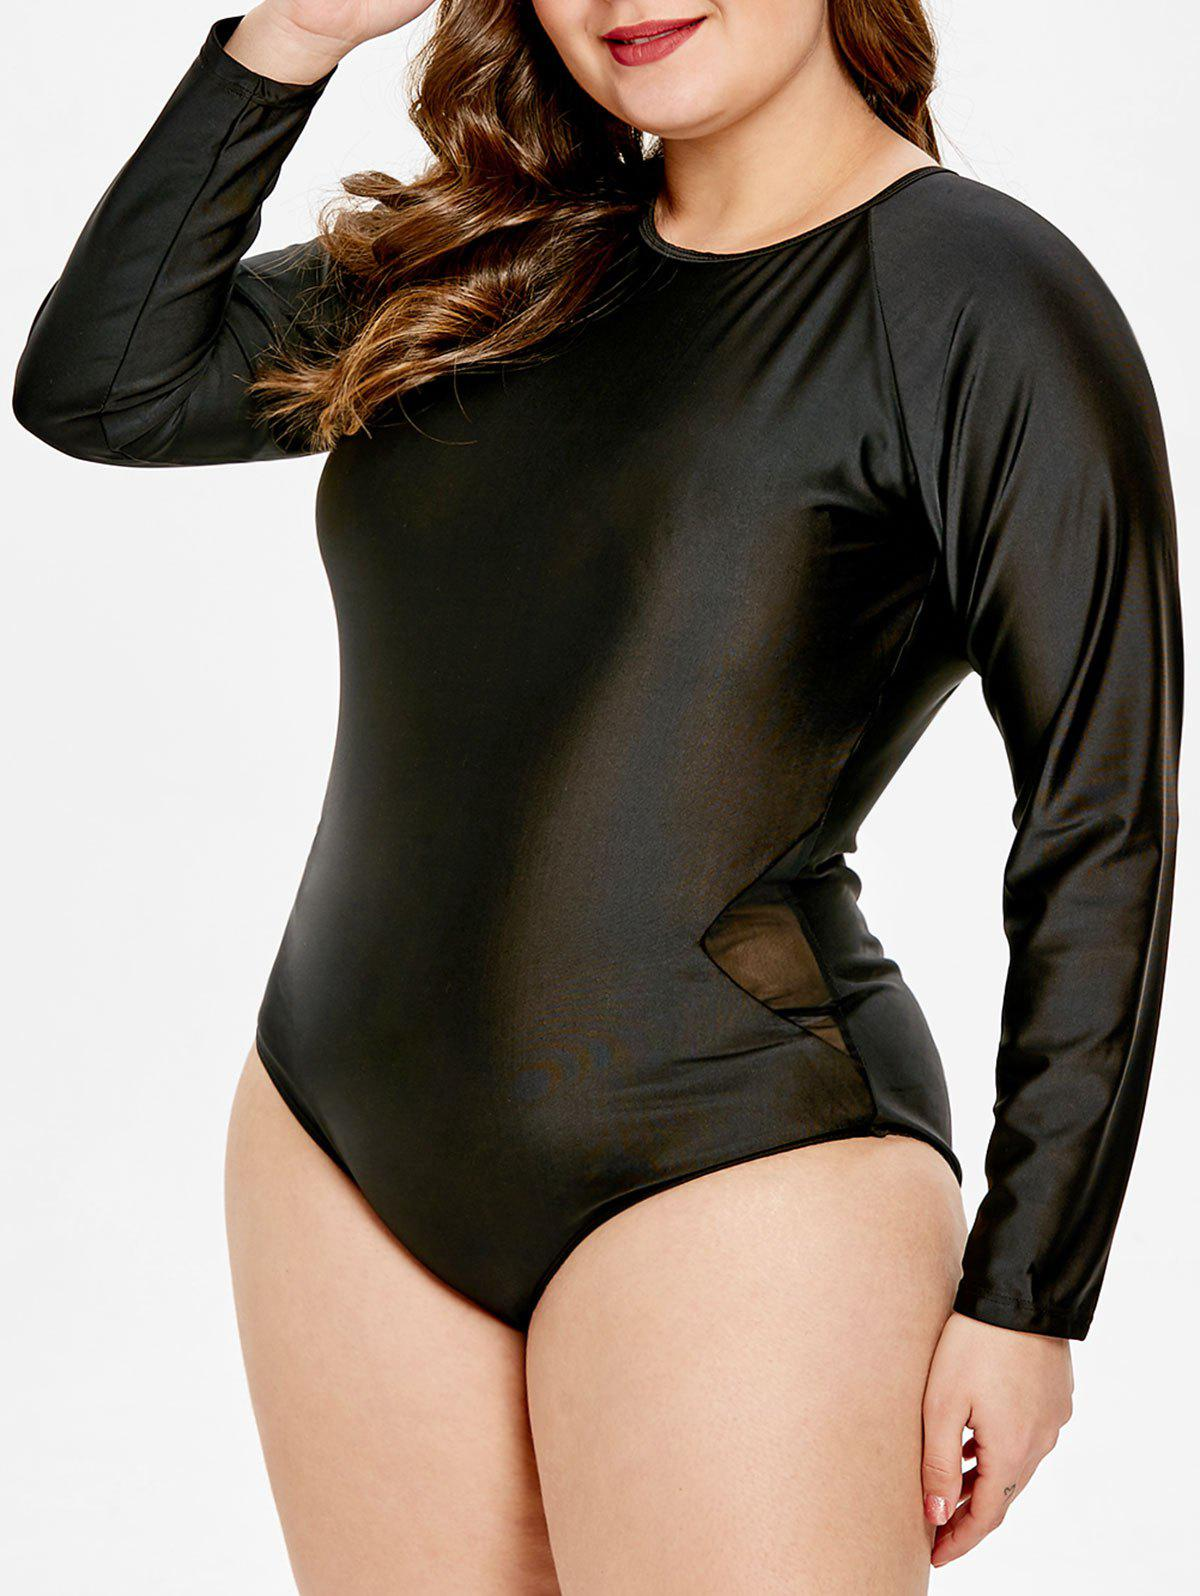 Buy Backless Plus Size Long Sleeve Swimsuit